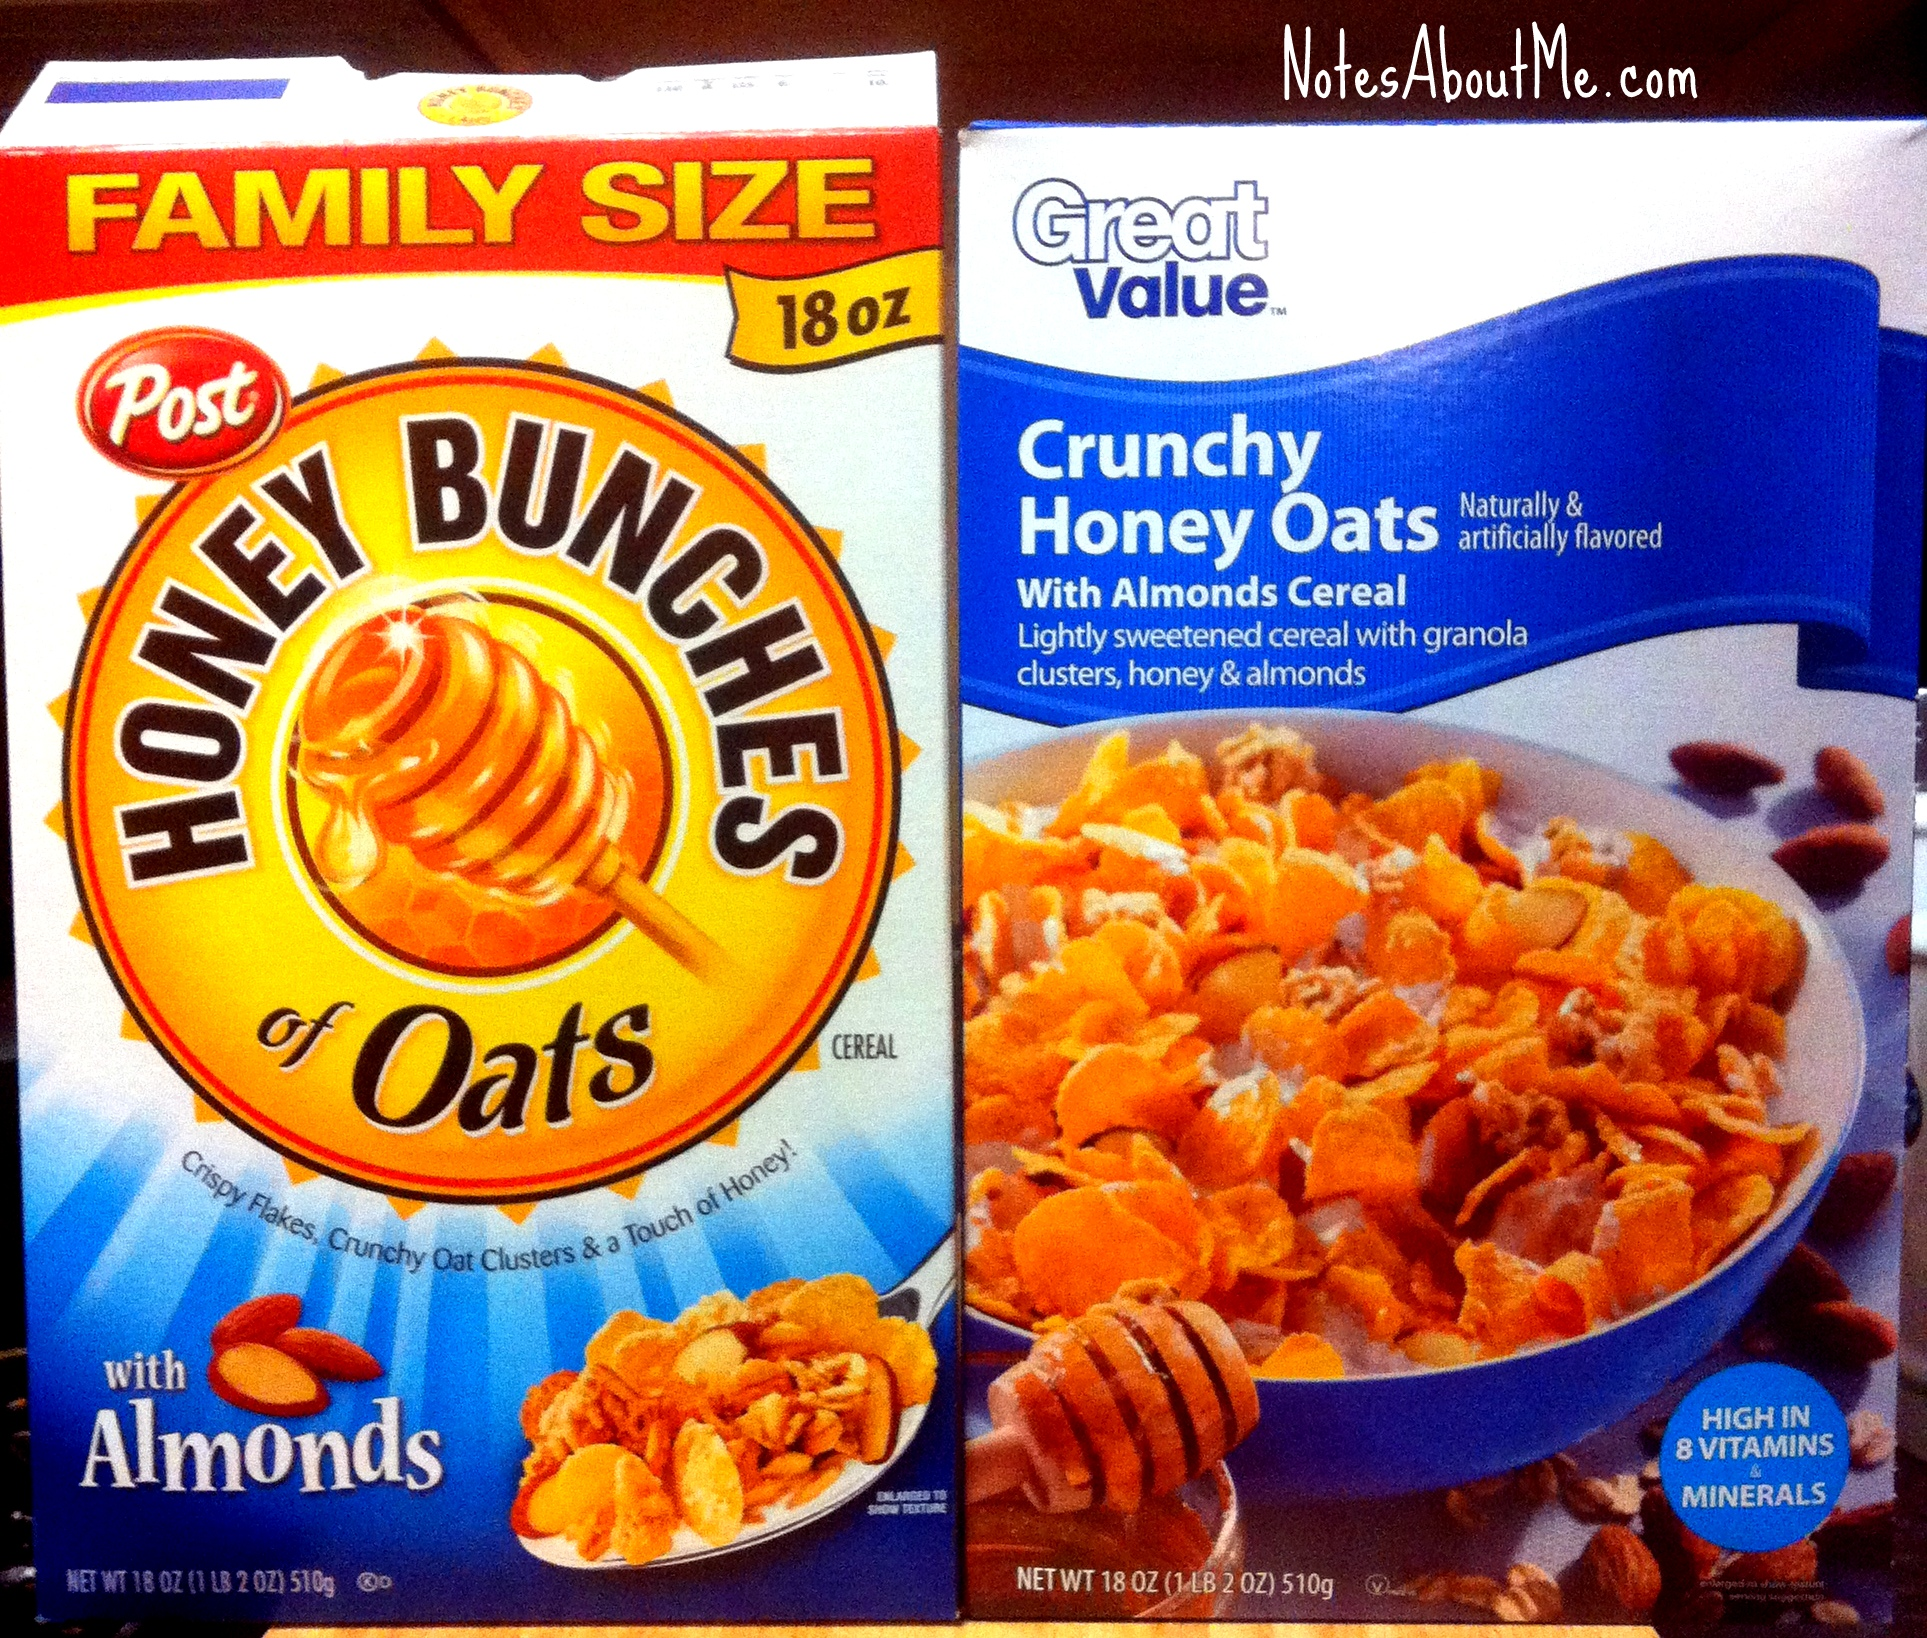 Post Honey Bunches Of Oats V Great Value Crunchy Honey Oats